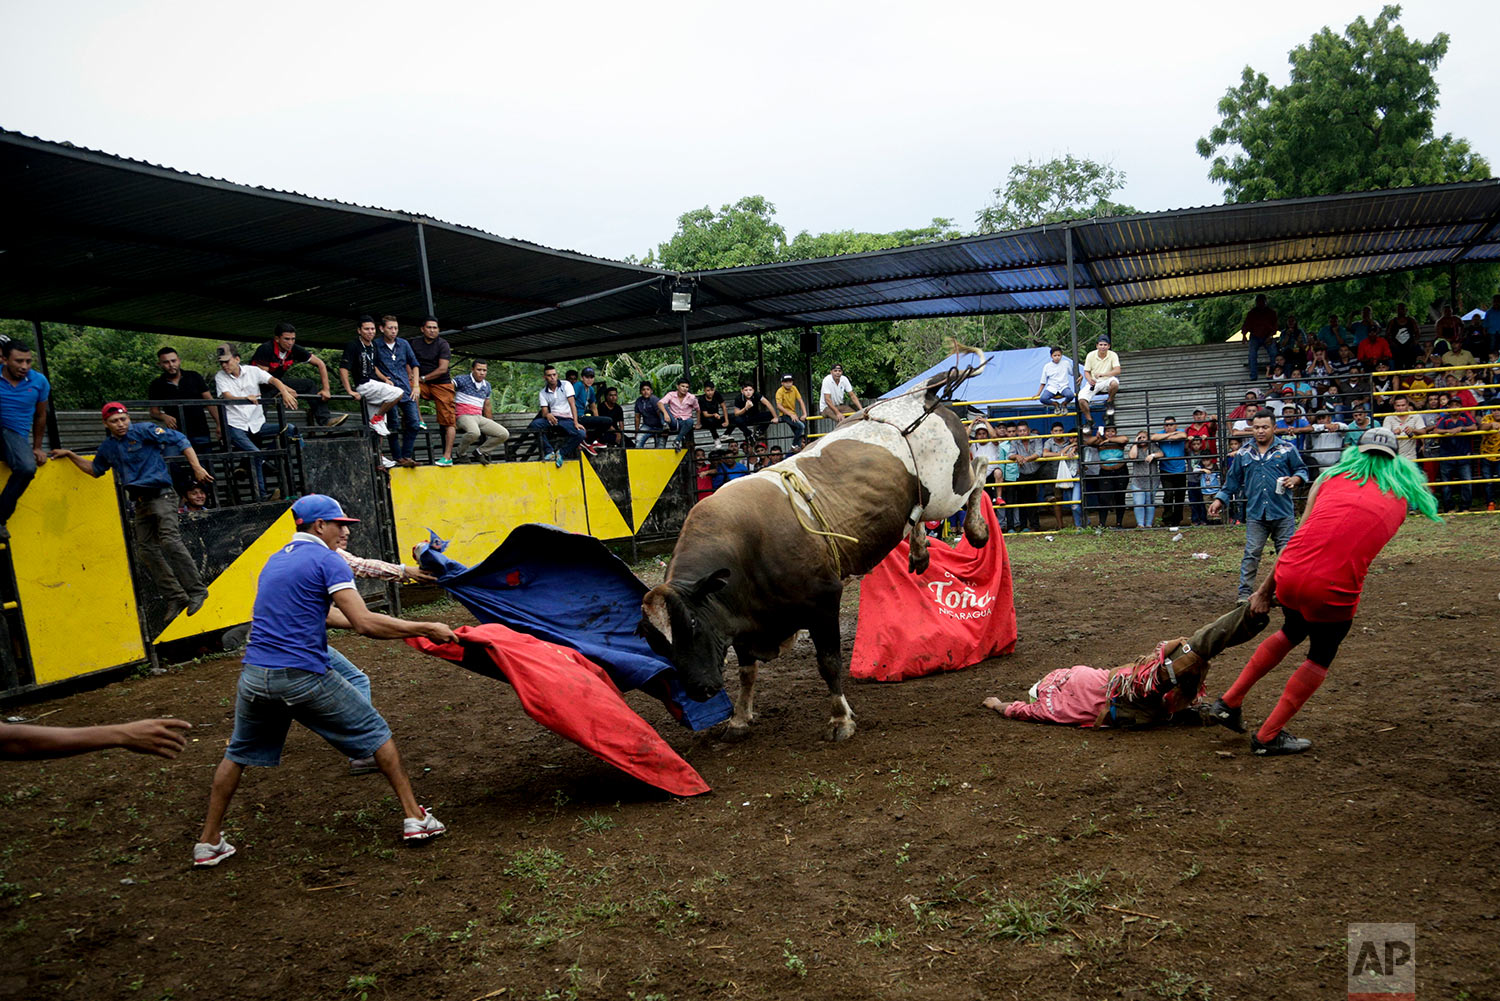 """A bucked rider is dragged to safety during a bull riding event on the eve of the annual Santo Domingo festival in Managua, Nicaragua, July 29, 2018. Festivities include processions, bull riding, parties and church services to pay homage to the popular saint who is fondly referred to as """"Minguito"""". (AP Photo/Arnulfo Franco)"""